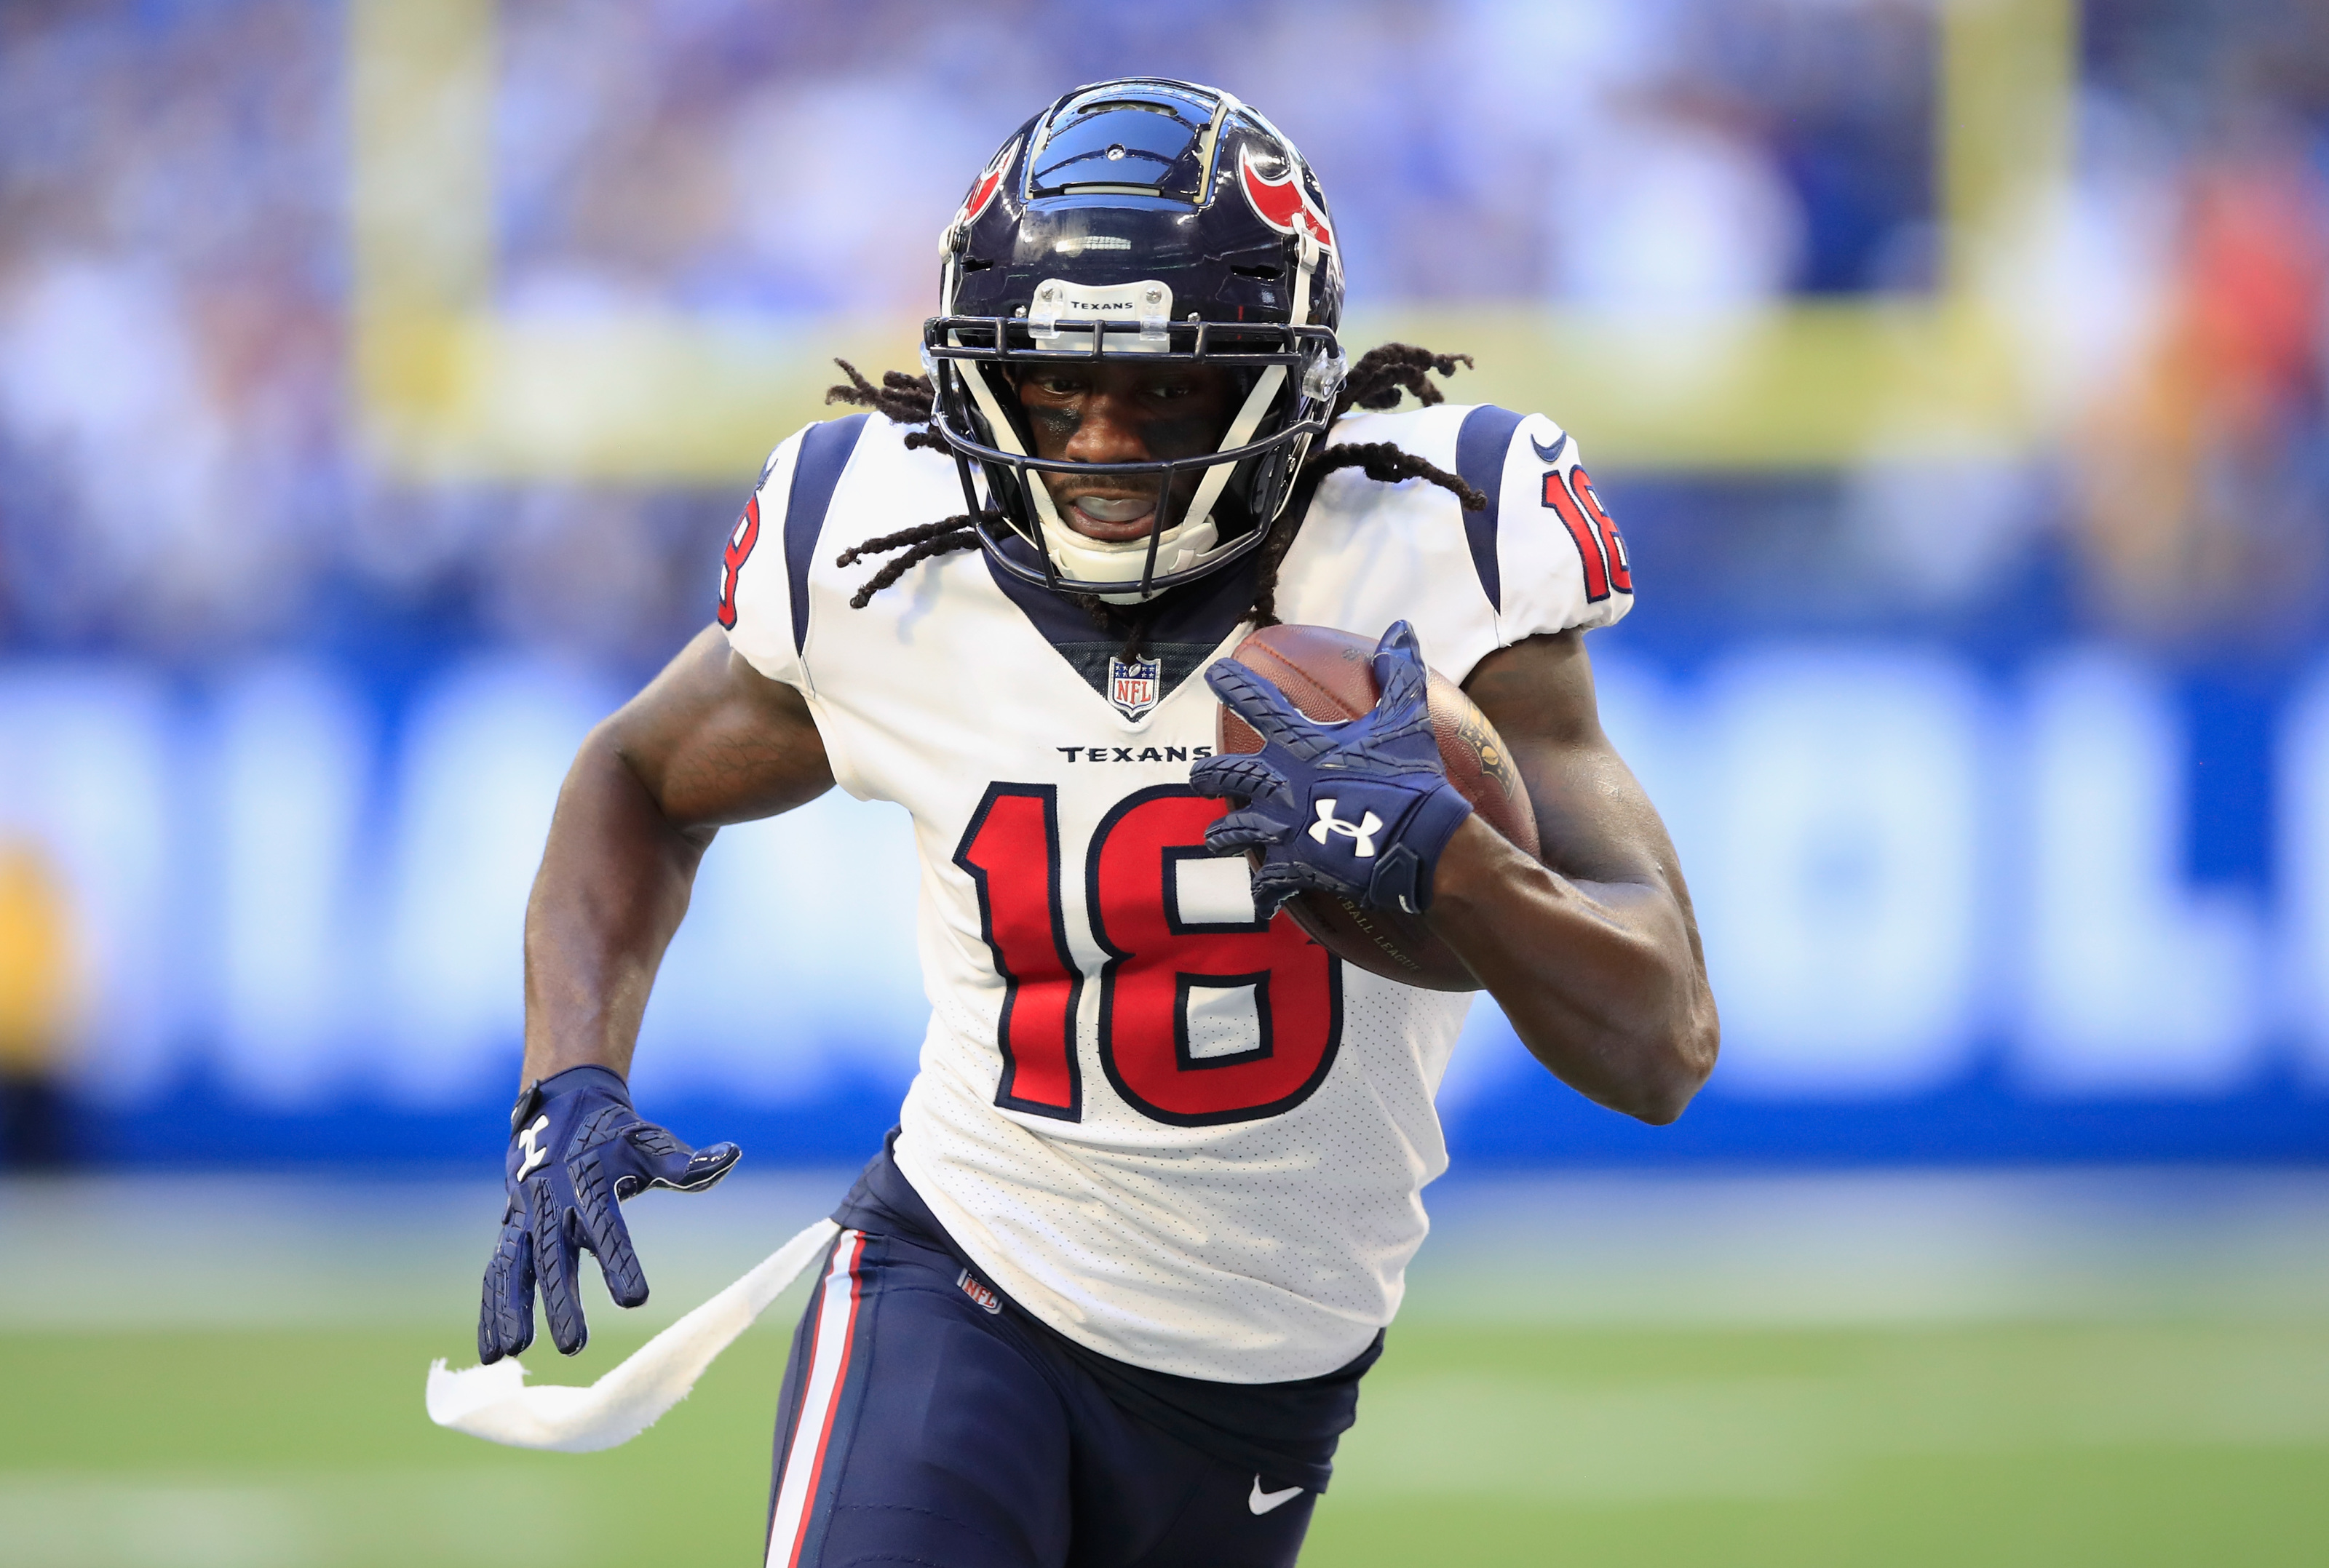 Former Houston Texans WR Sammie Coates now with the XFL